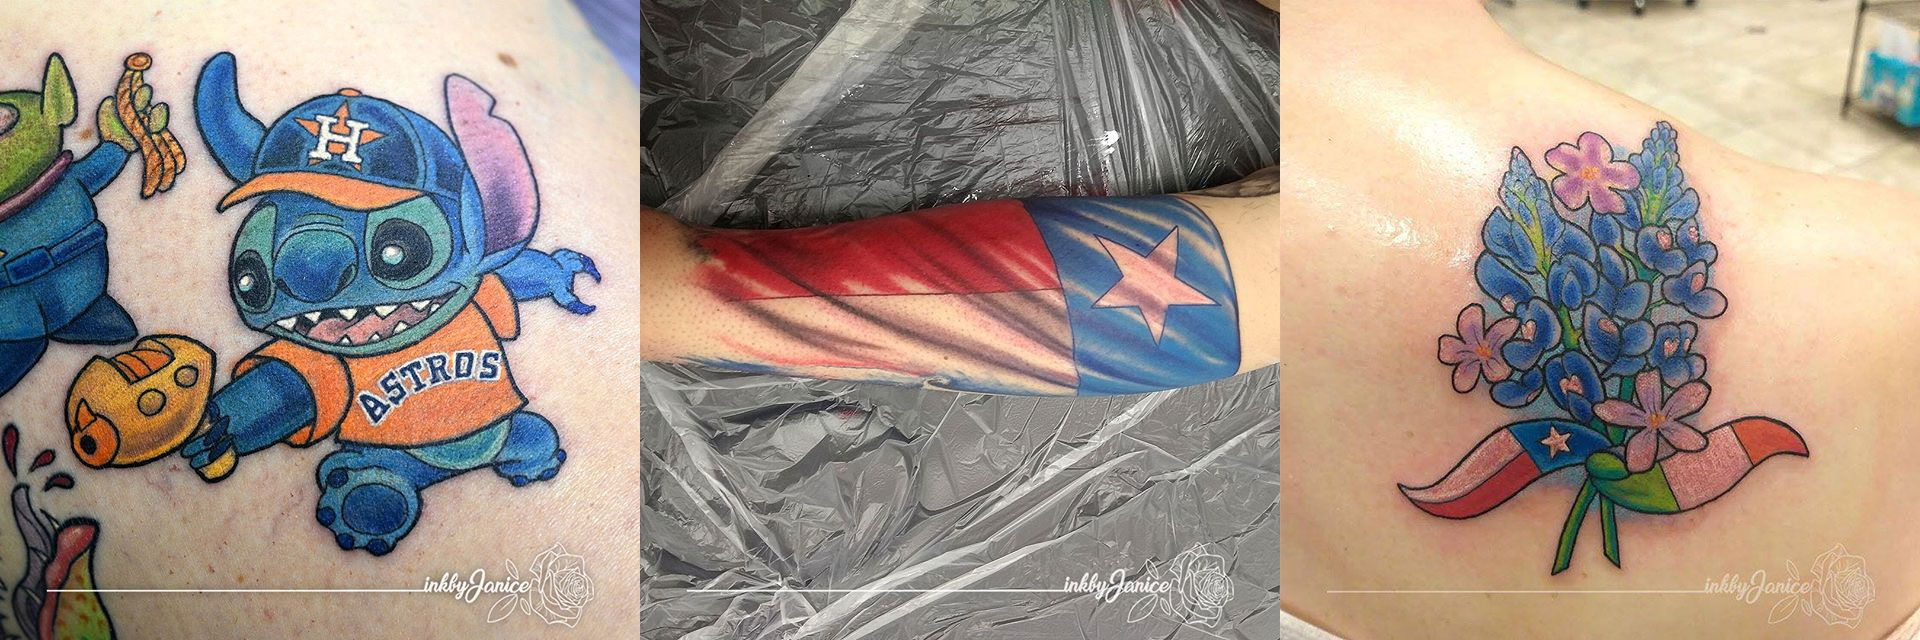 Popular Texan Tattoos